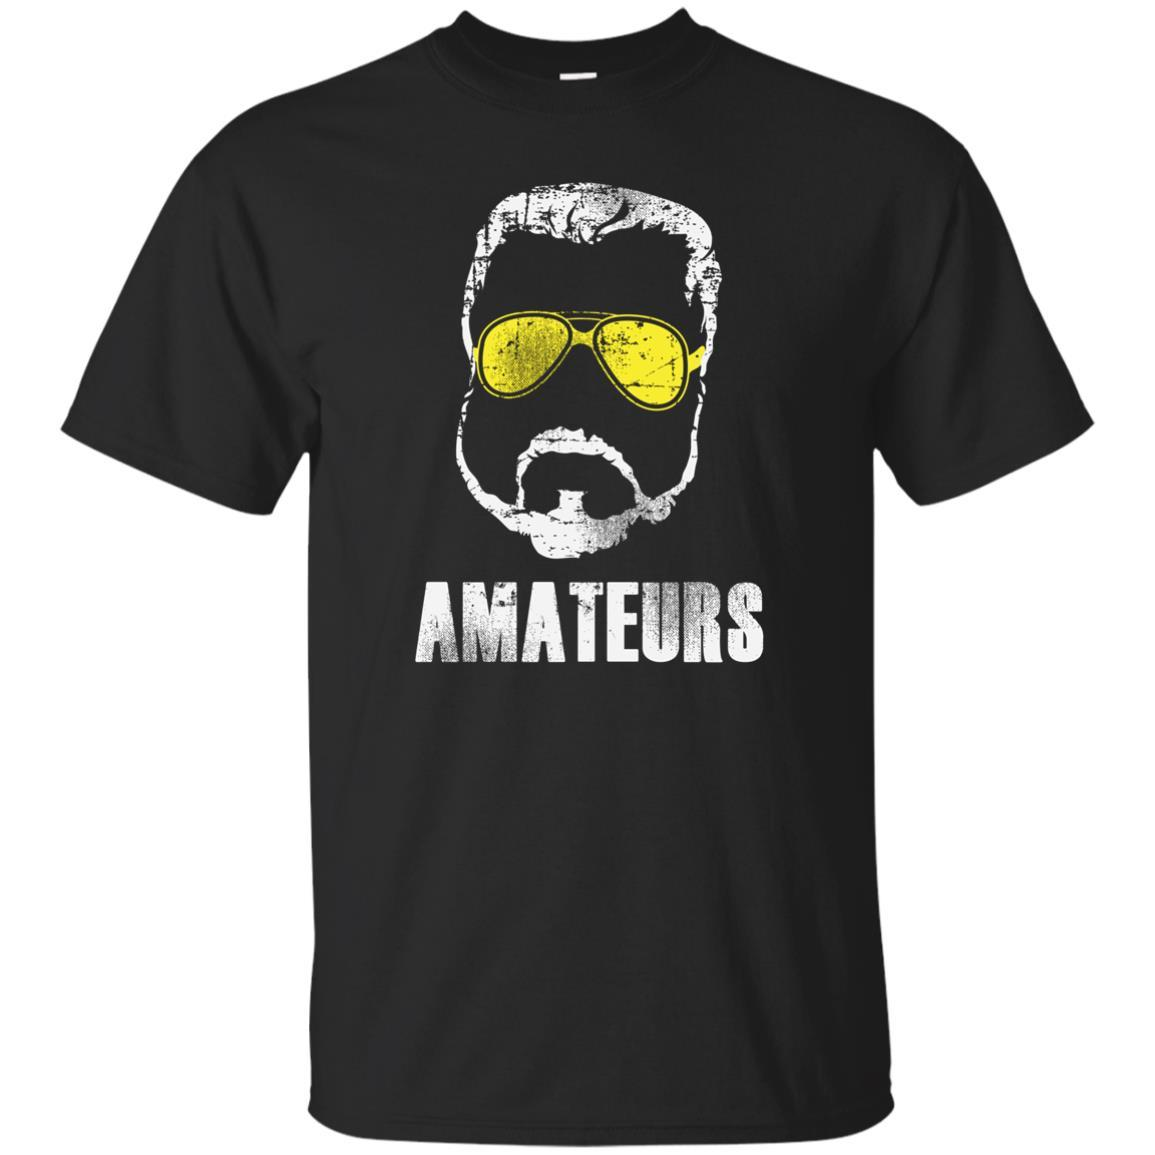 T-Shirts - Amateurs Unisex Tee